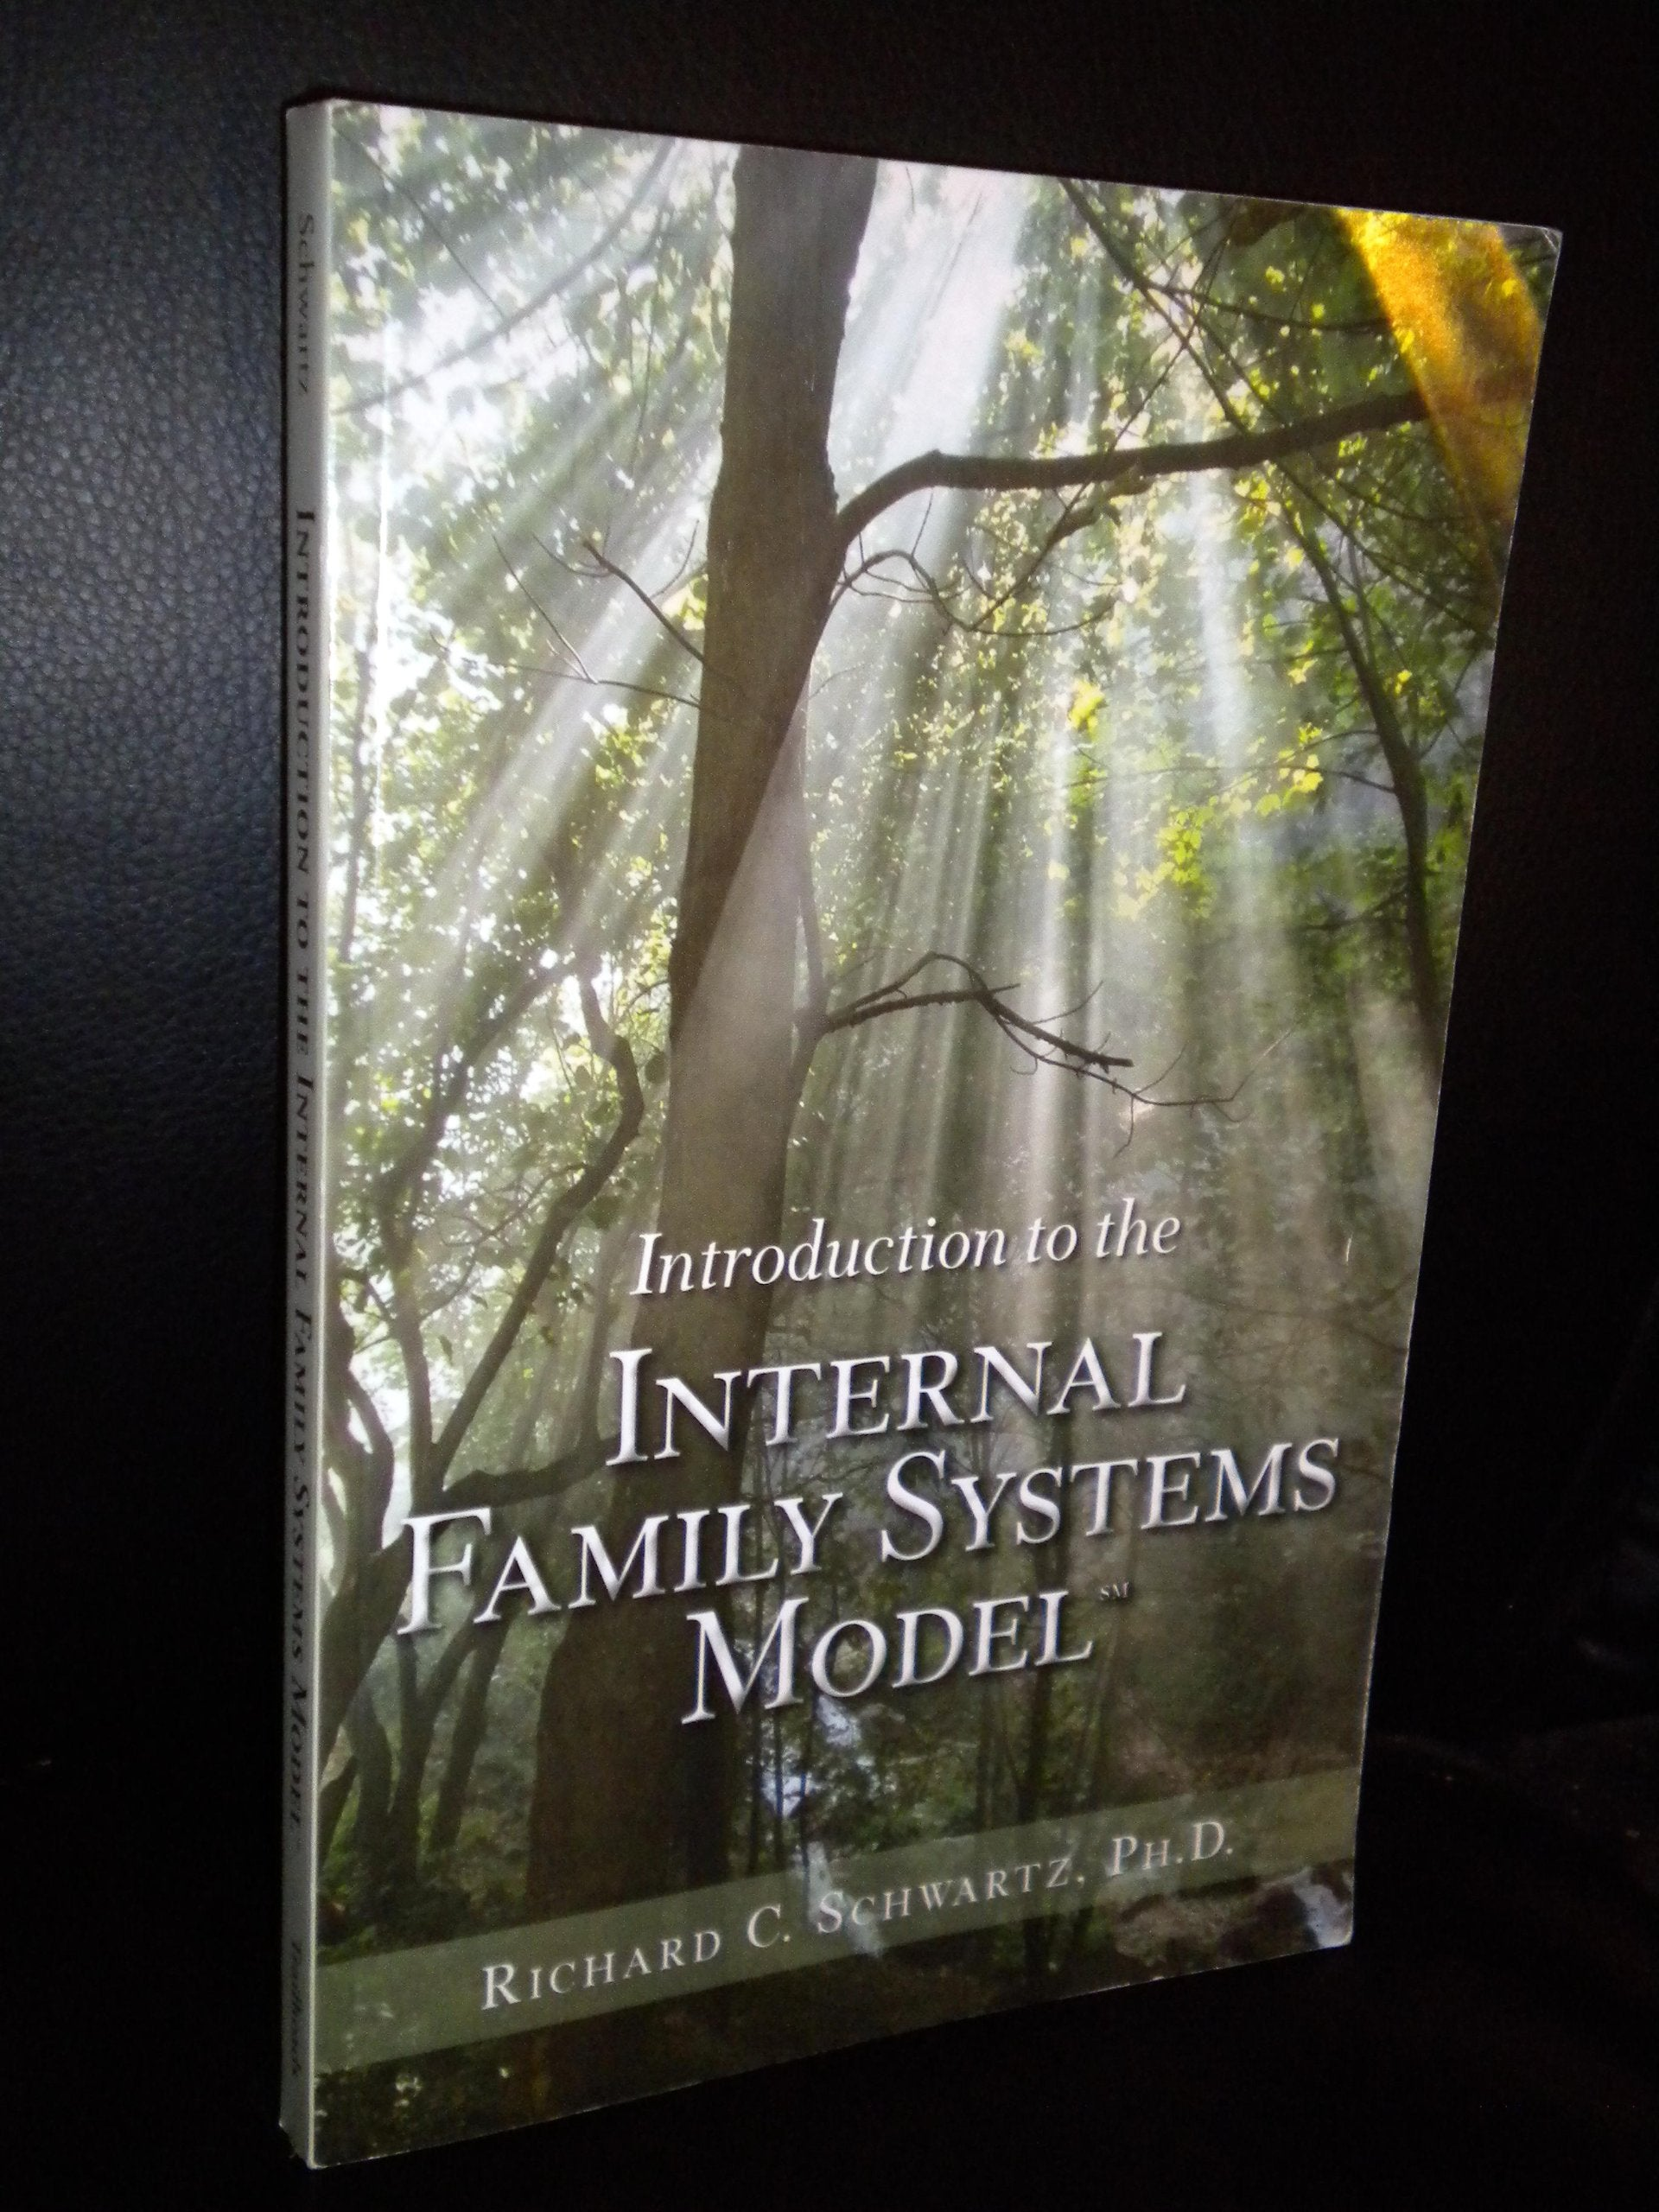 Introduction to the Internal Family Systems Model by Richard C. Schwartz